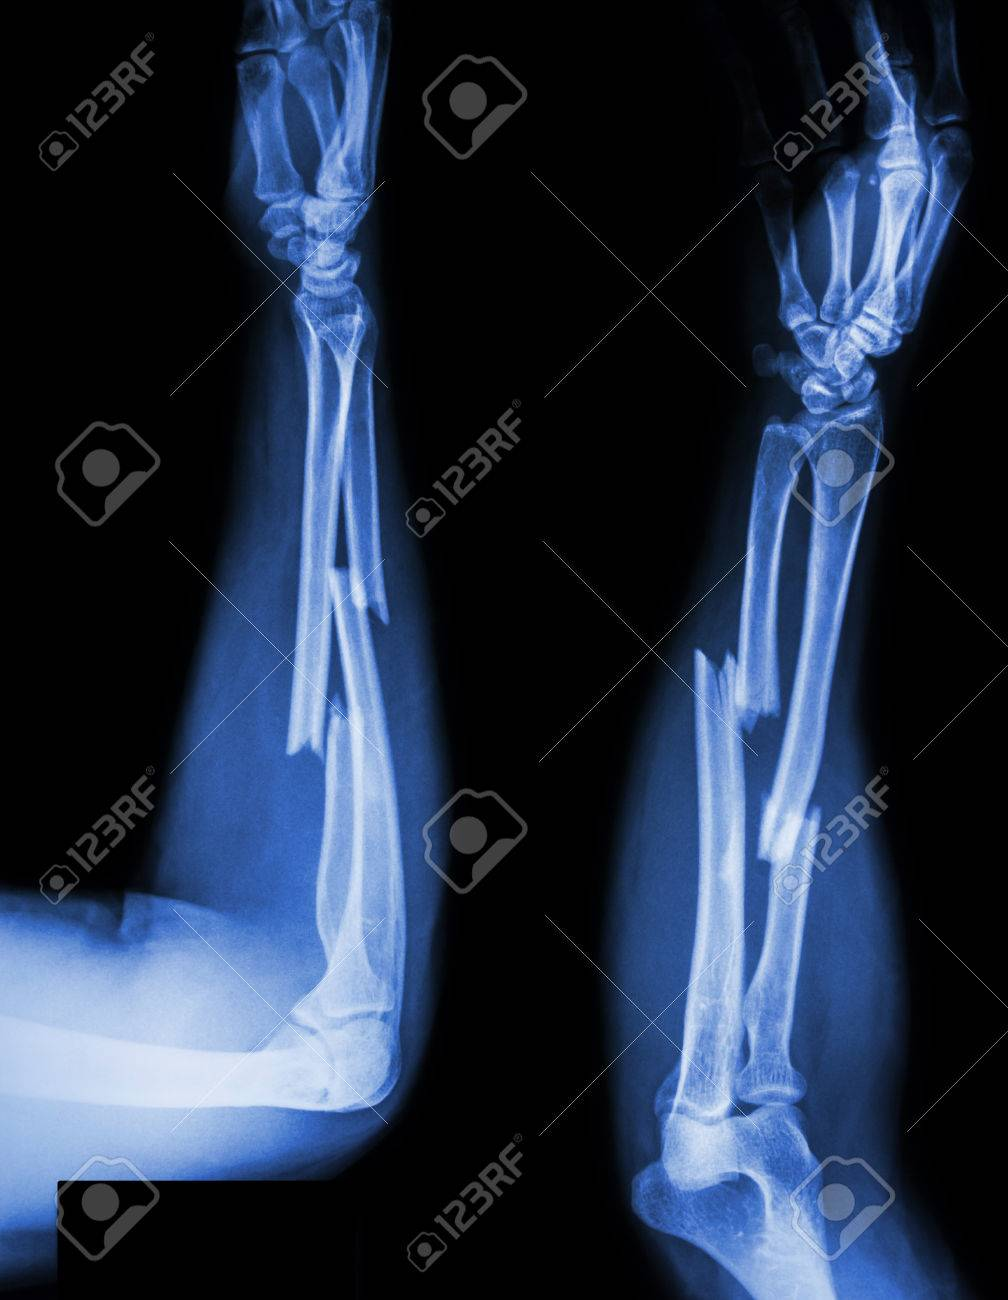 Fracture Shaft Of Radius & Ulnar Bone Stock Photo, Picture And ...